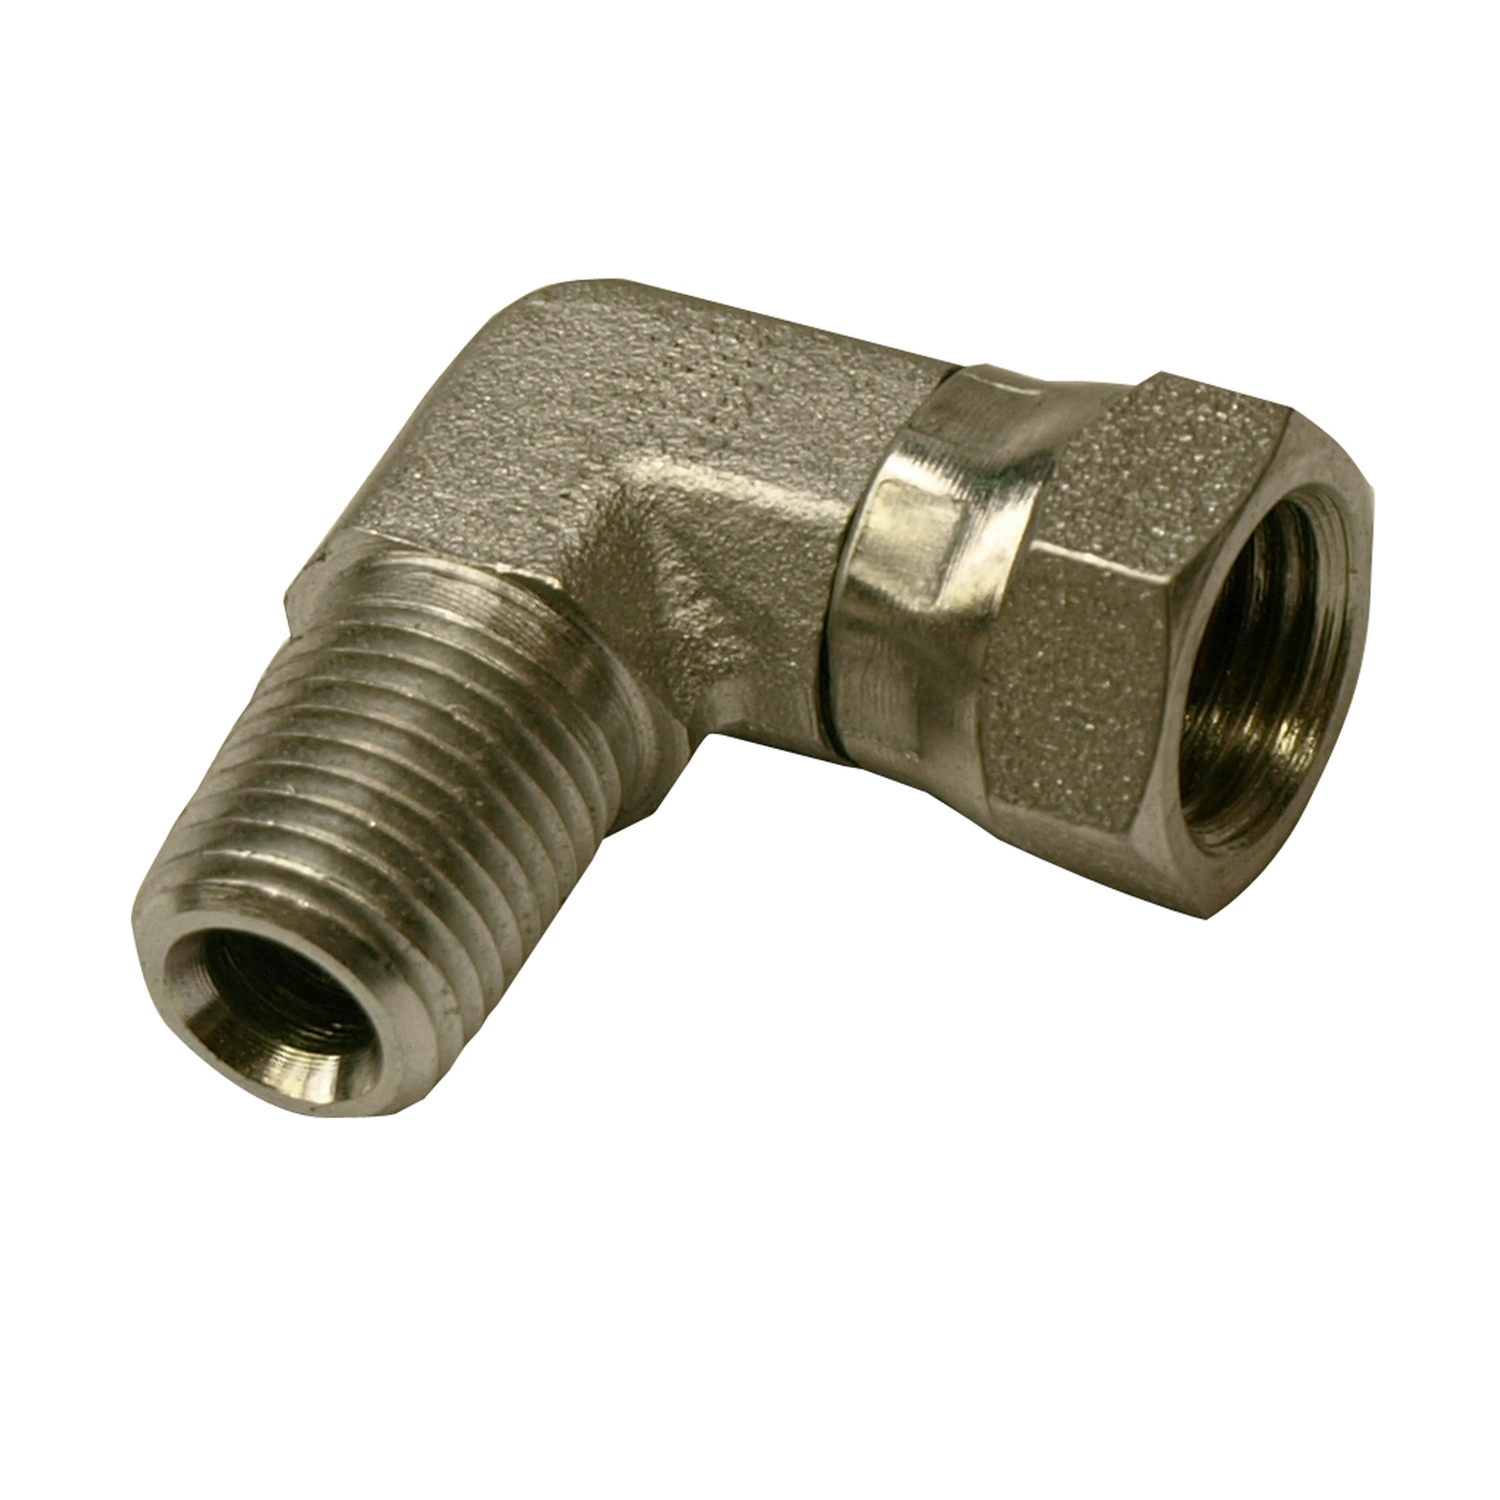 Universal  Steel  Hydraulic Adapter  3/4 in. Dia. x 1/2 in. Dia. 1